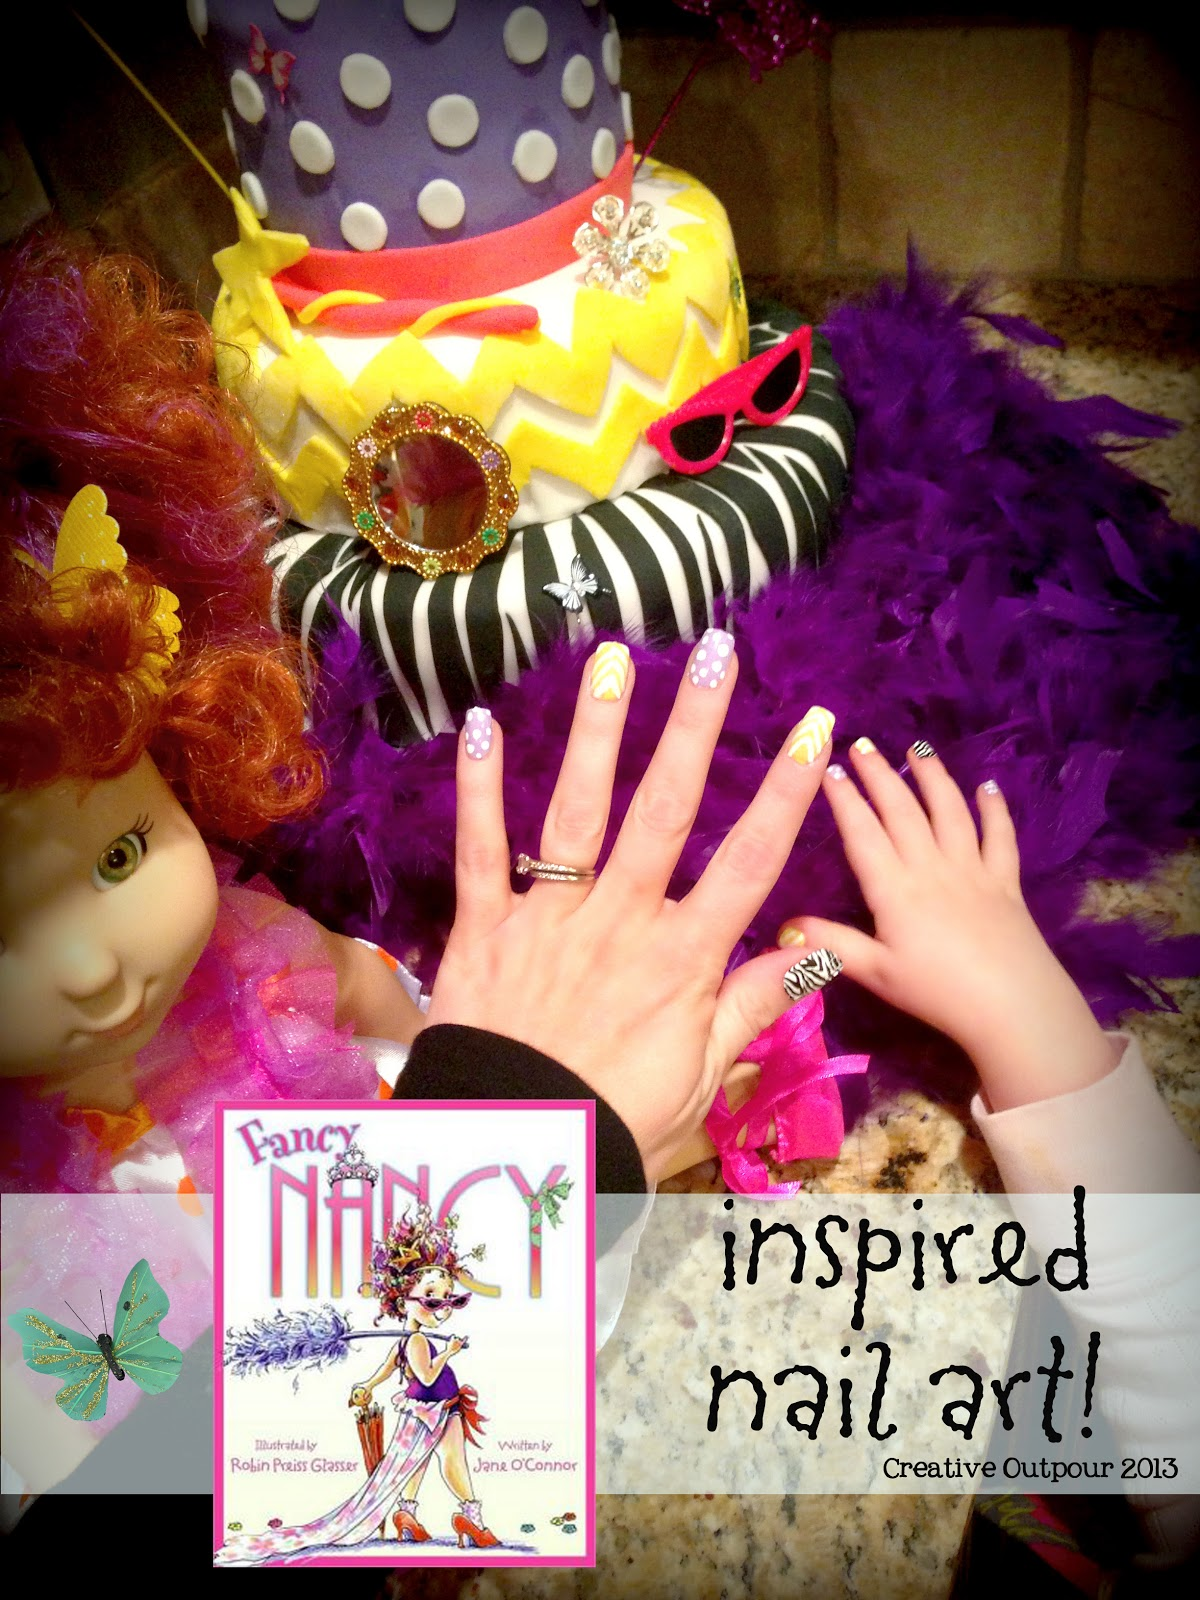 Fancy Nancy Inspired Nail Art! - Creative Outpour